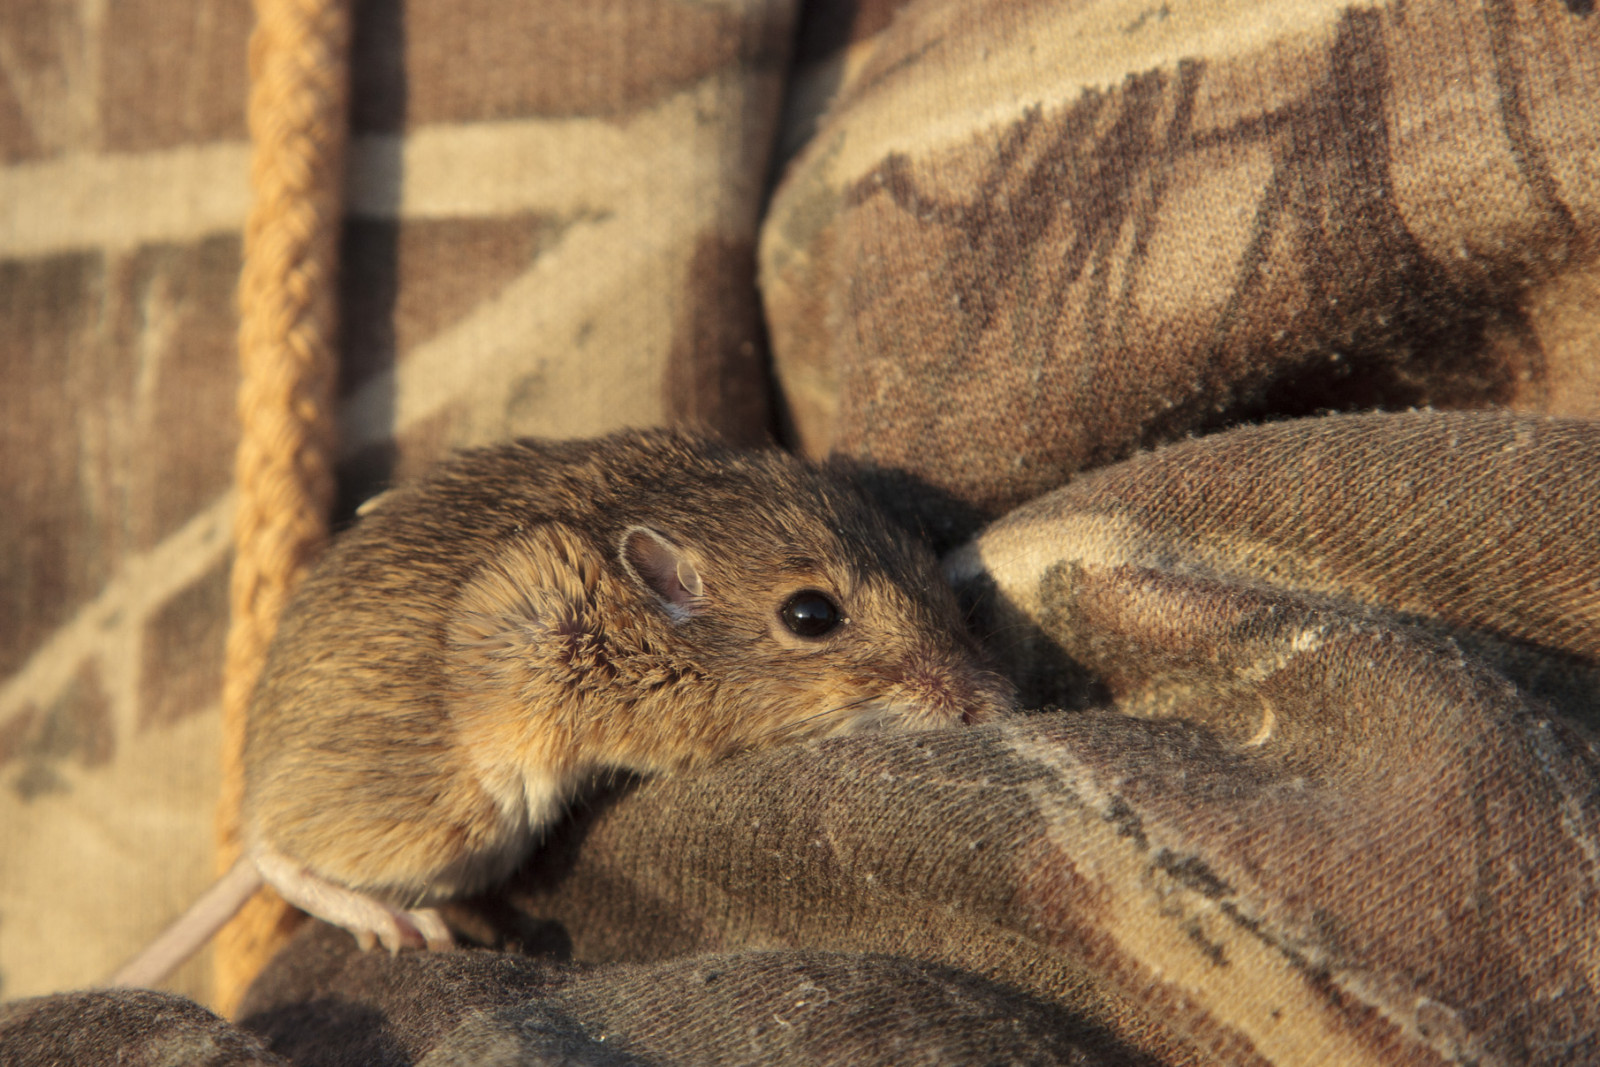 A plains pocket mouse nuzzles into Schrad's elbow after being measured. (Evan Barrientos)